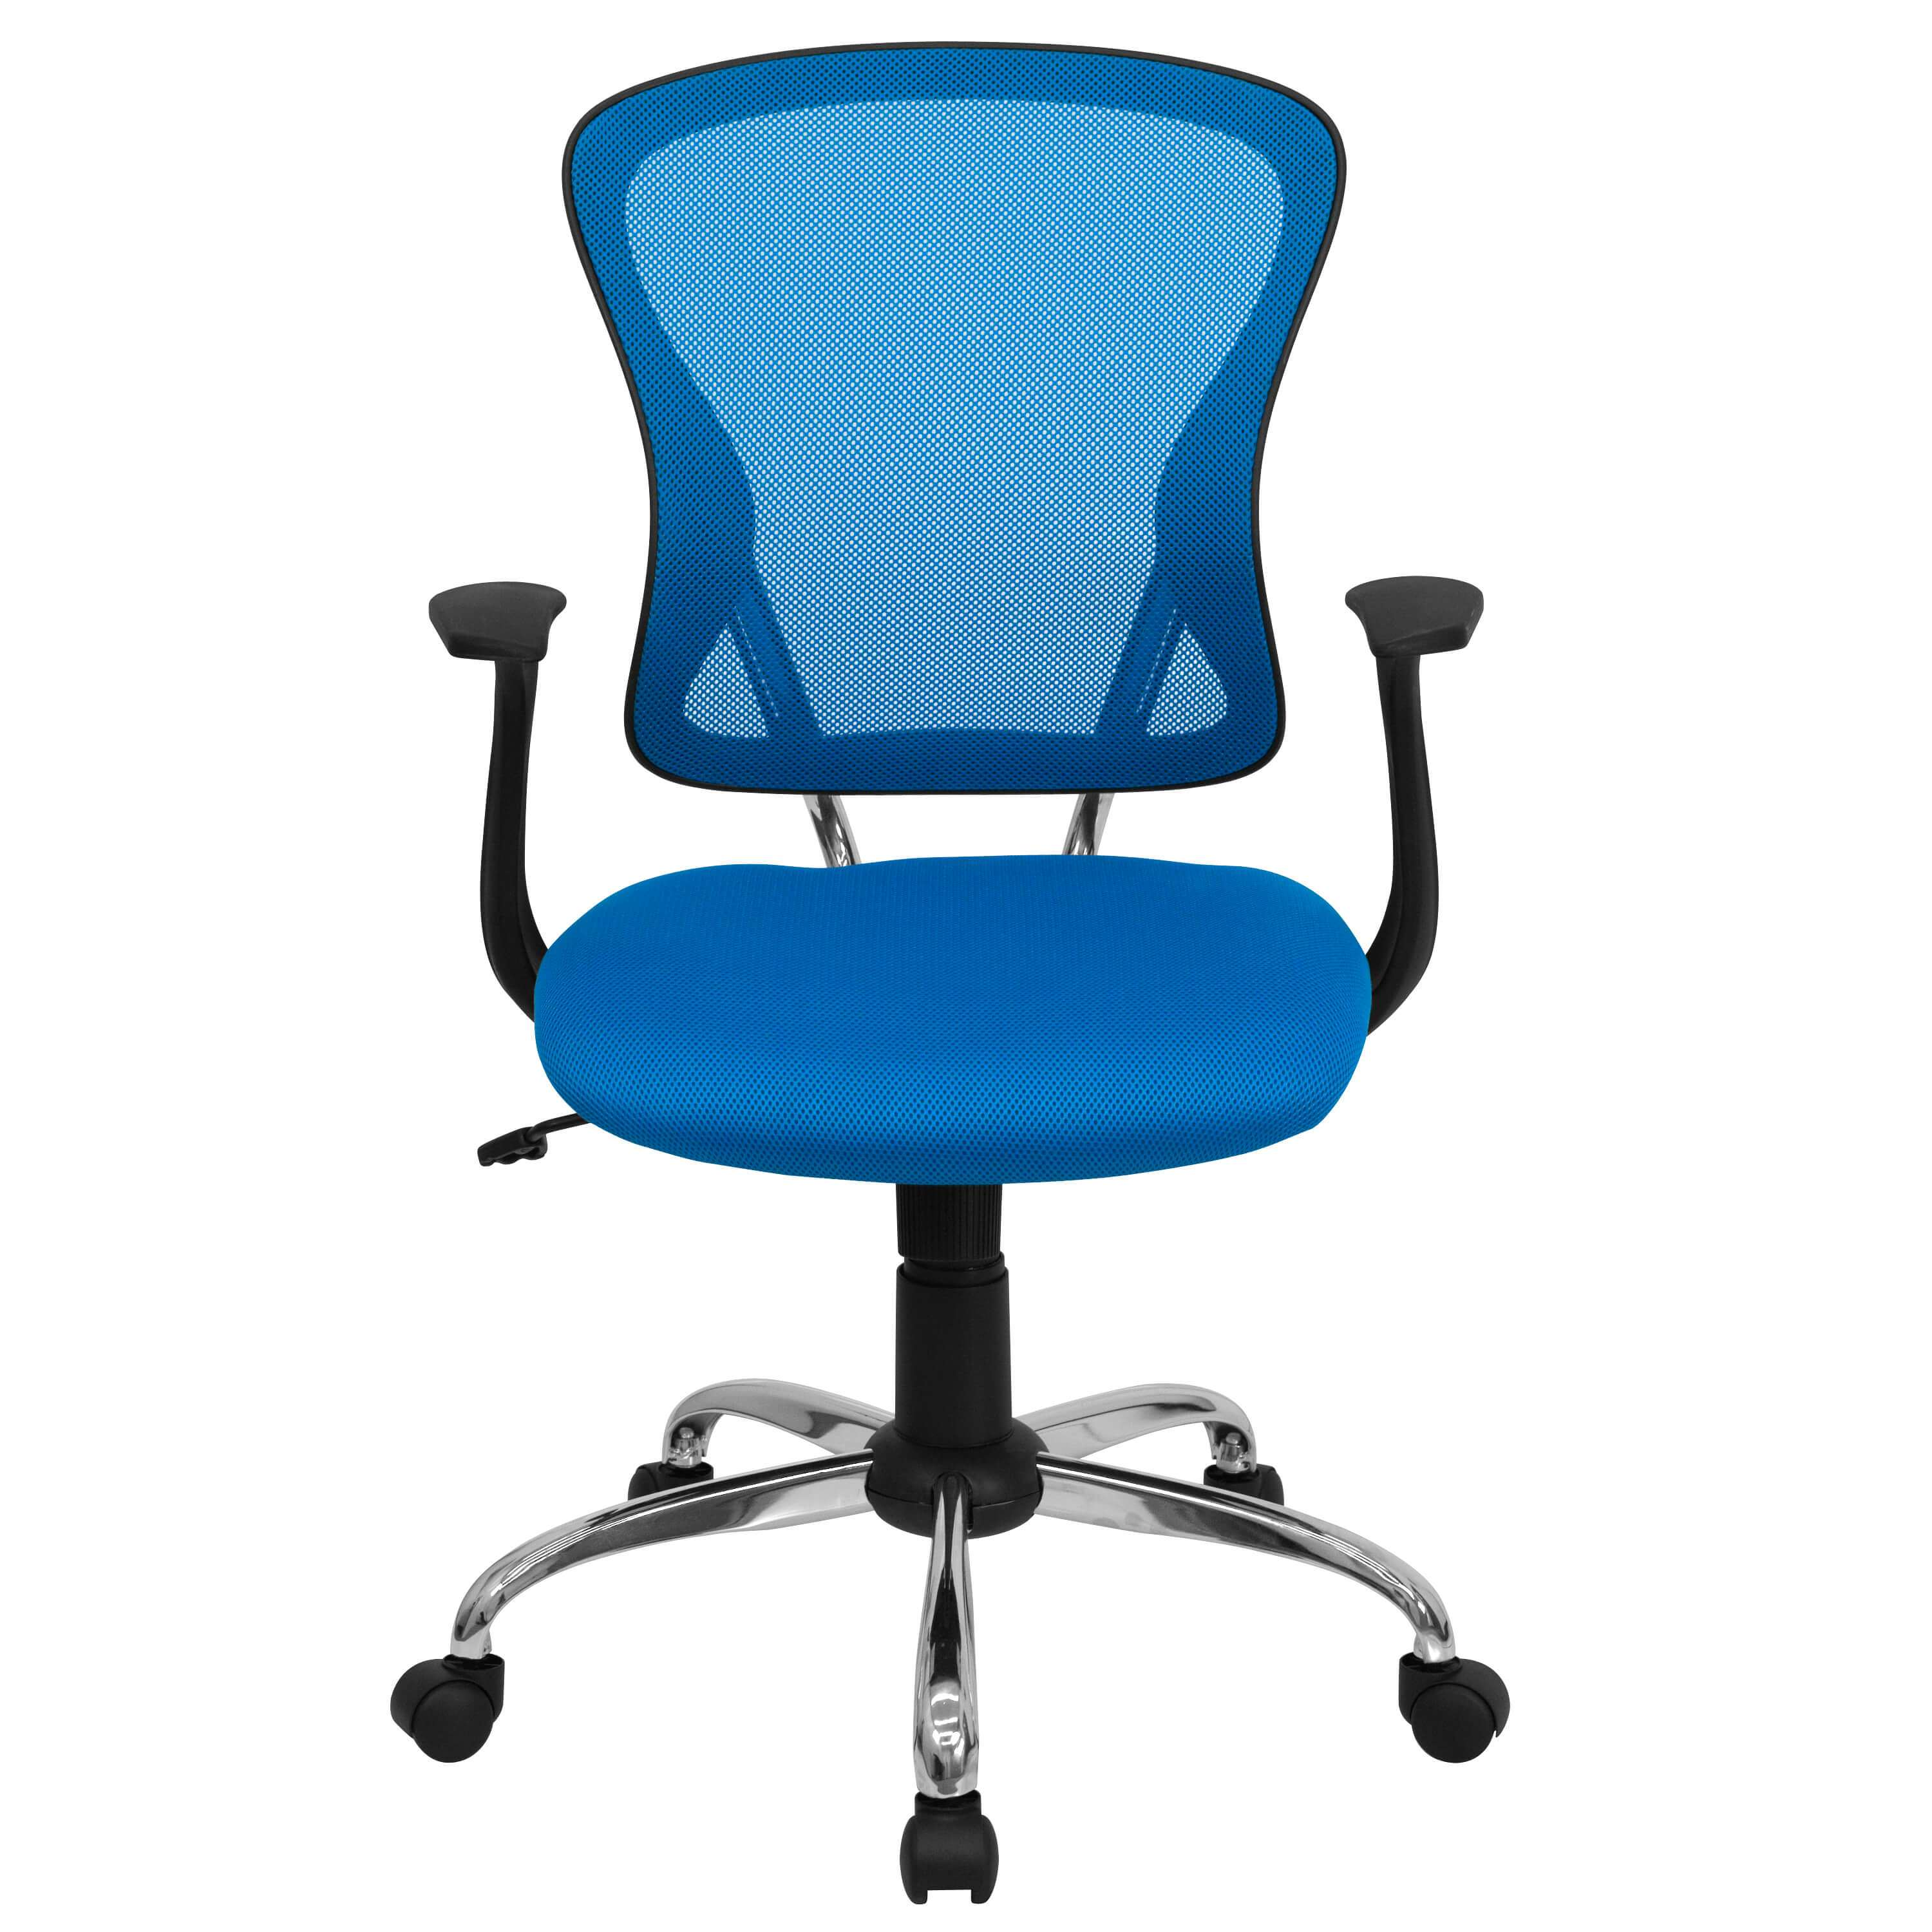 Colorful desk chairs CUB H 8369F BL GG FLA